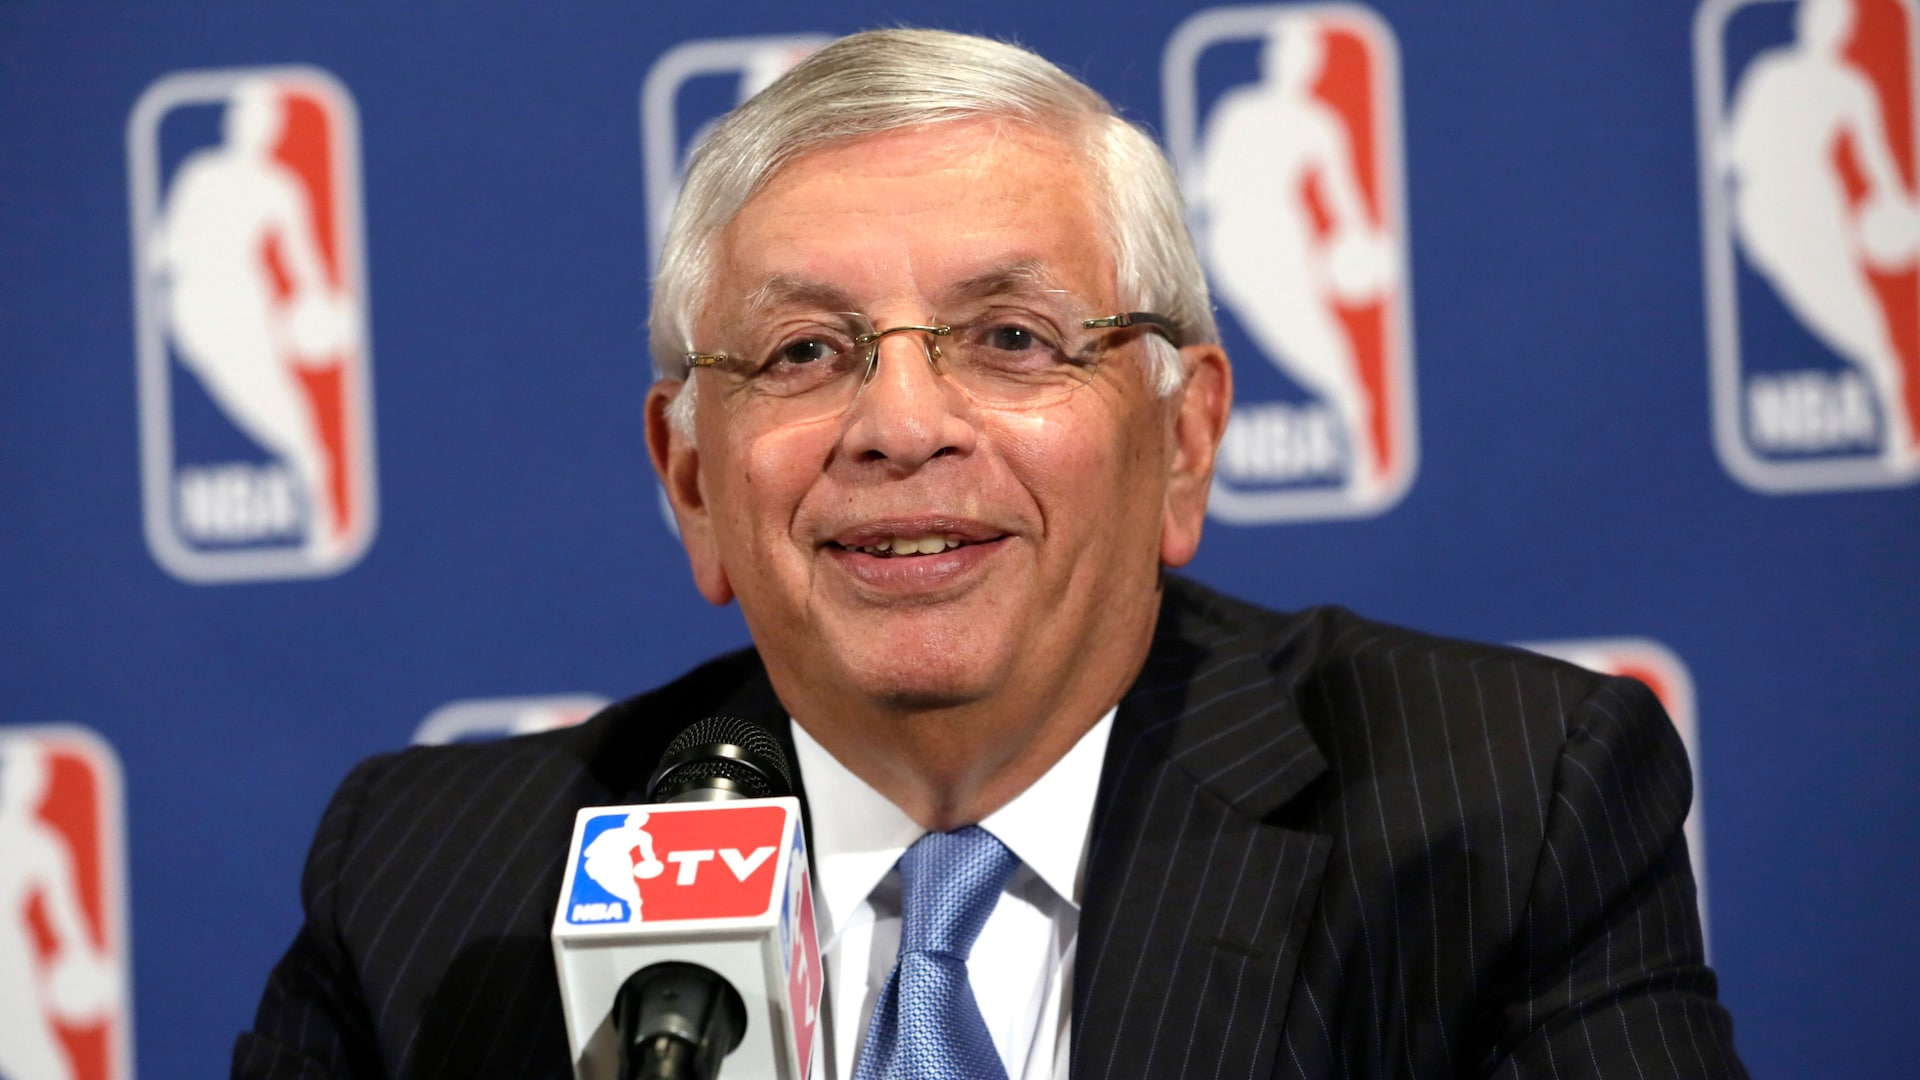 David Stern's life, career celebrated at memorial service